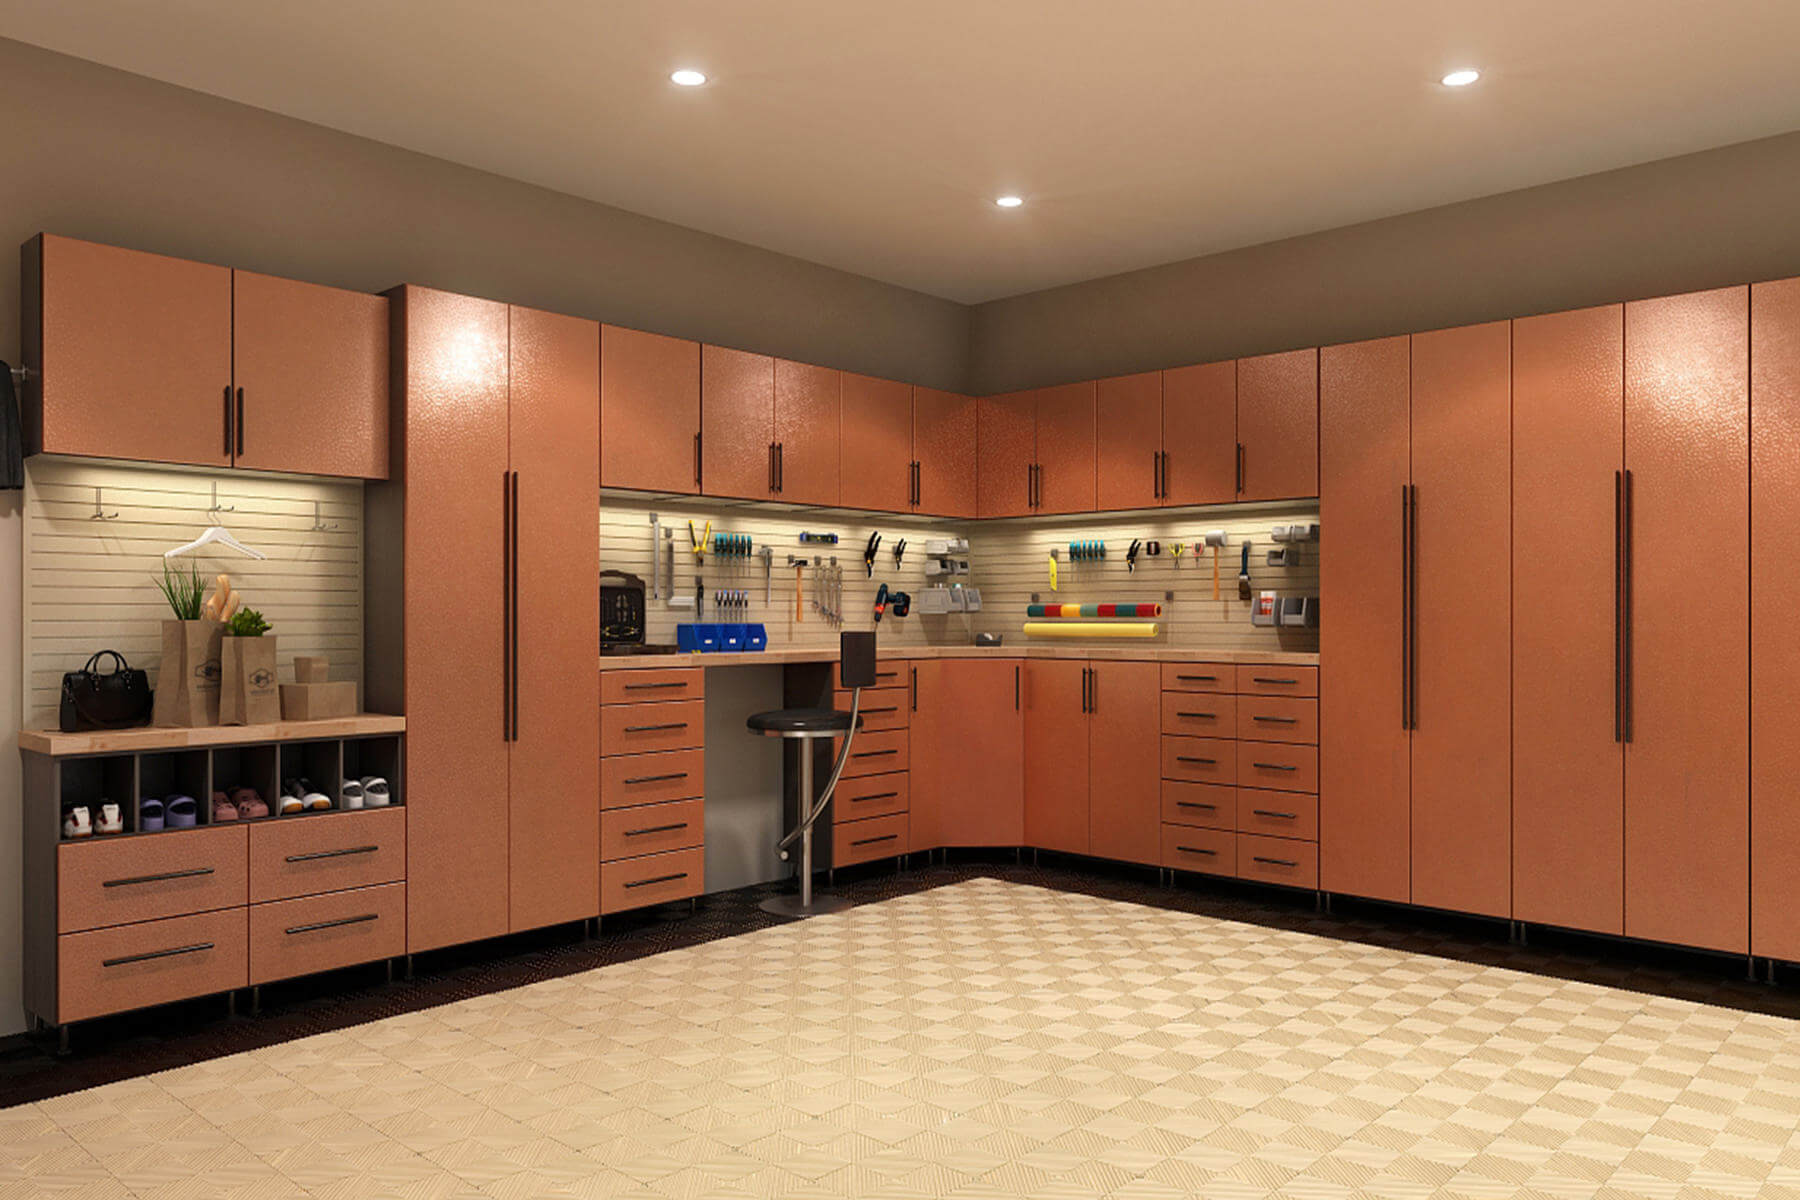 This garage has earthly colors pleasing to behold. The main attraction of the room is obviously the bronze metal doors of the cabinets that produce a sophisticated yet cozy look.